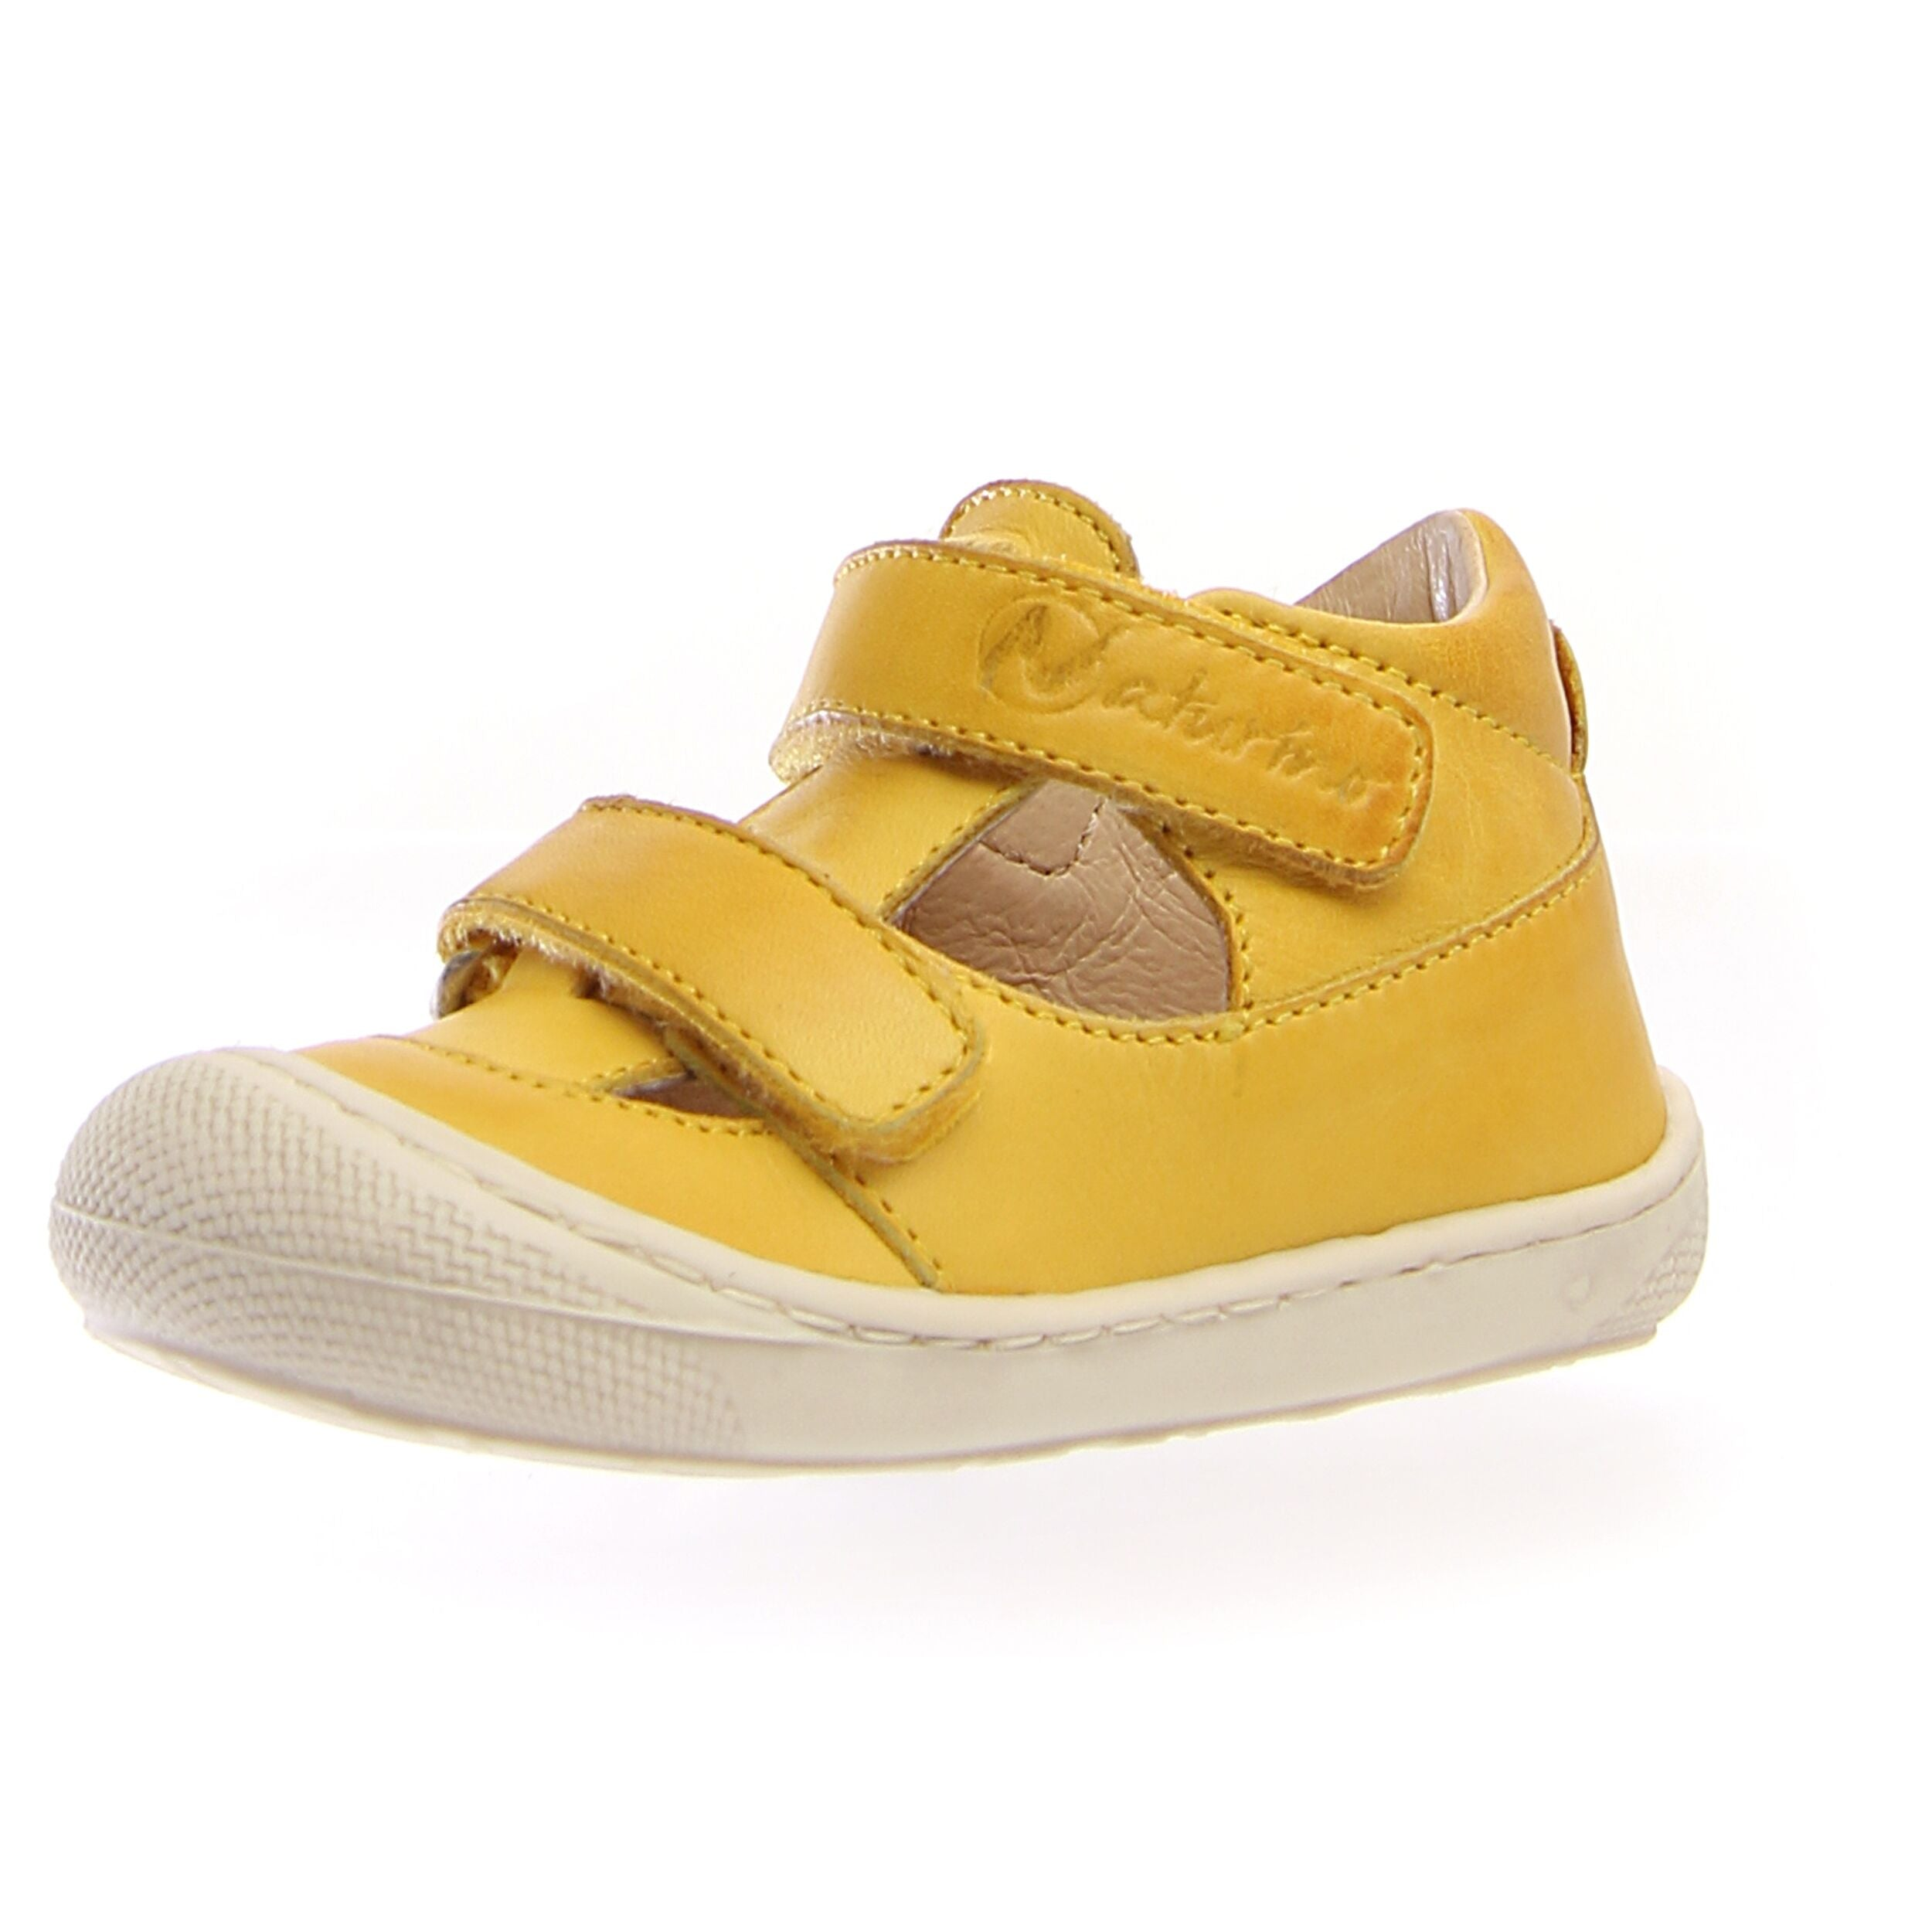 Puffy - Giallo Leather